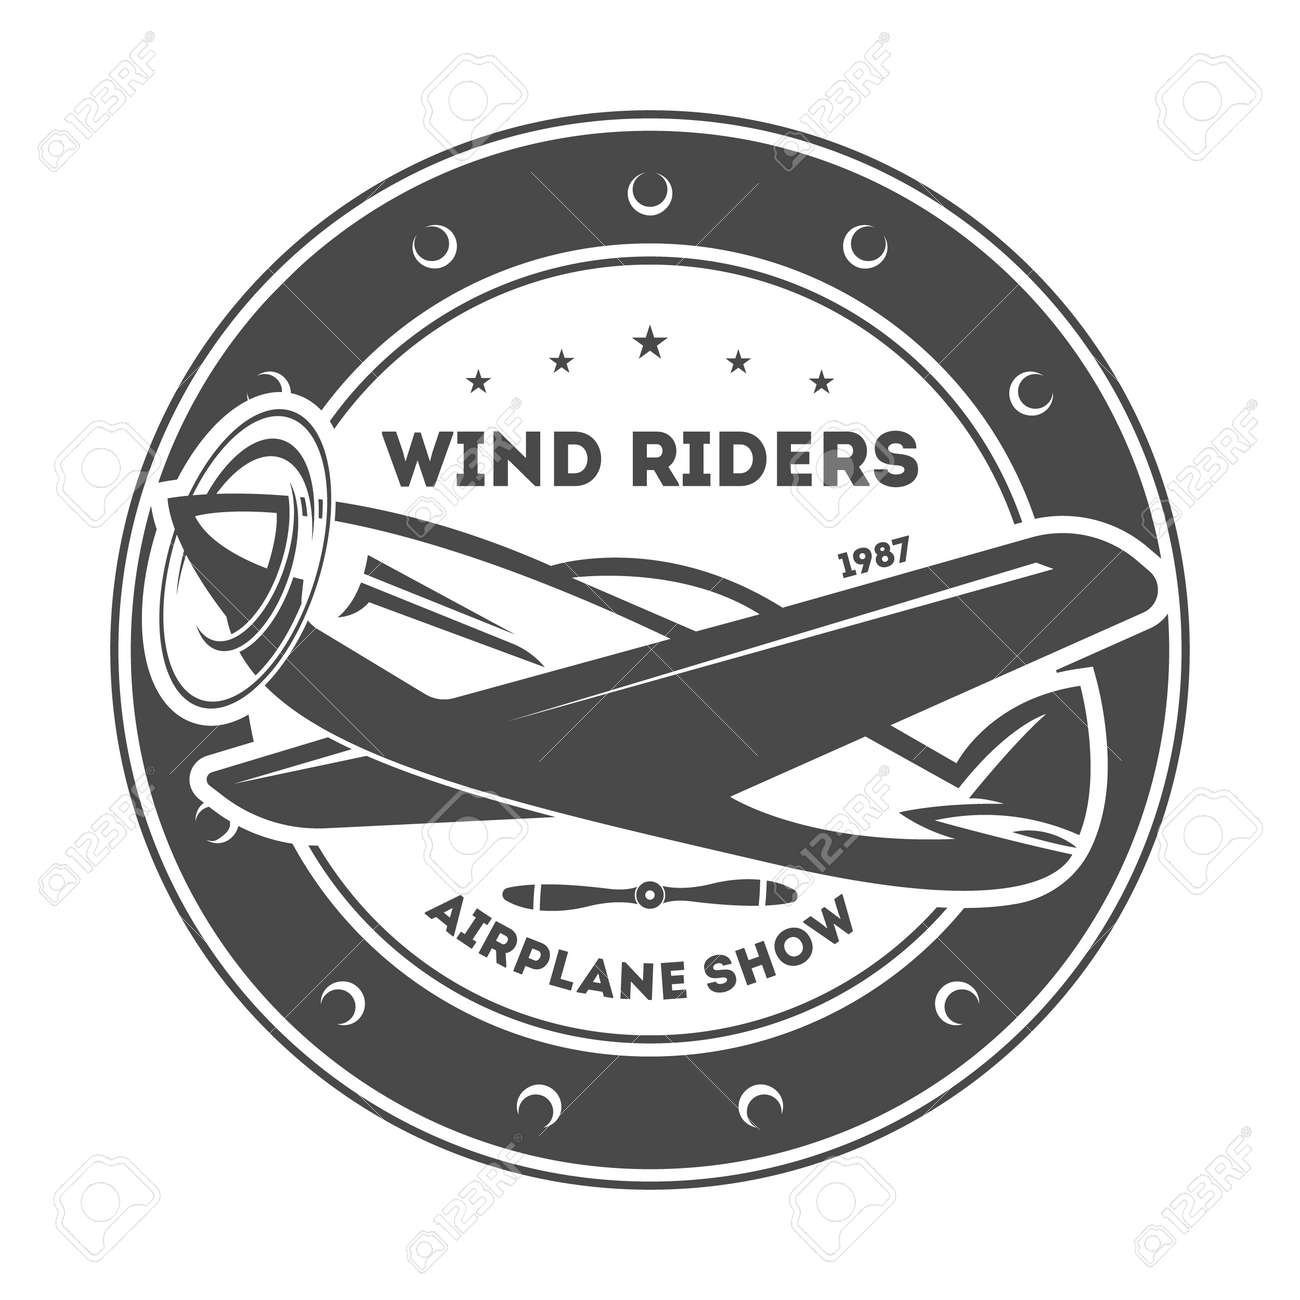 Airplane vintage isolated label vector illustration. Wind riders show and best pilot symbols. Airplane academy and flying club sign. Air travel and plane tours logo. Airplane shool logo template - 72807653